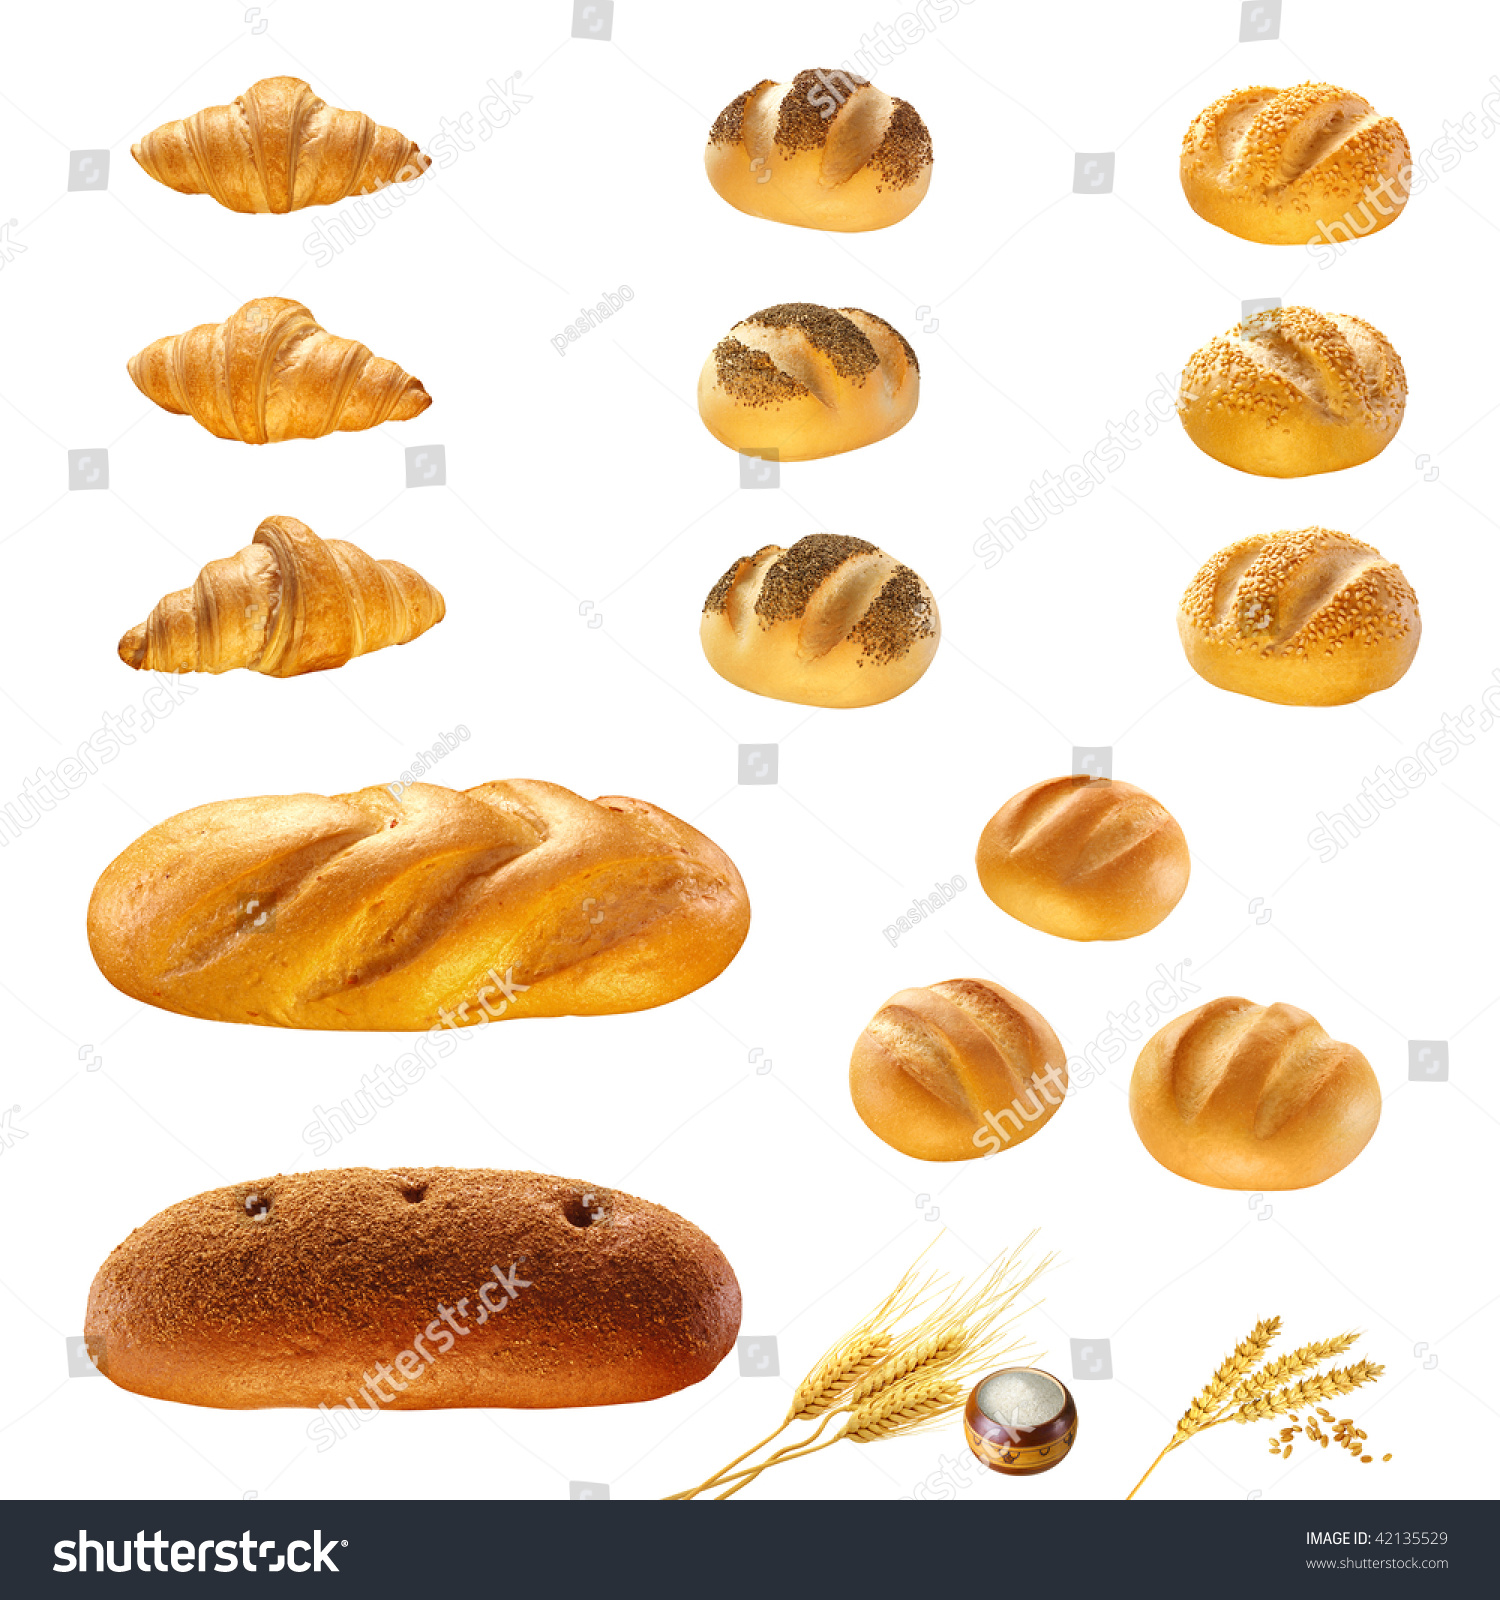 Set Types Bread Products Isolated Prepare Stock Photo 42135529 ...